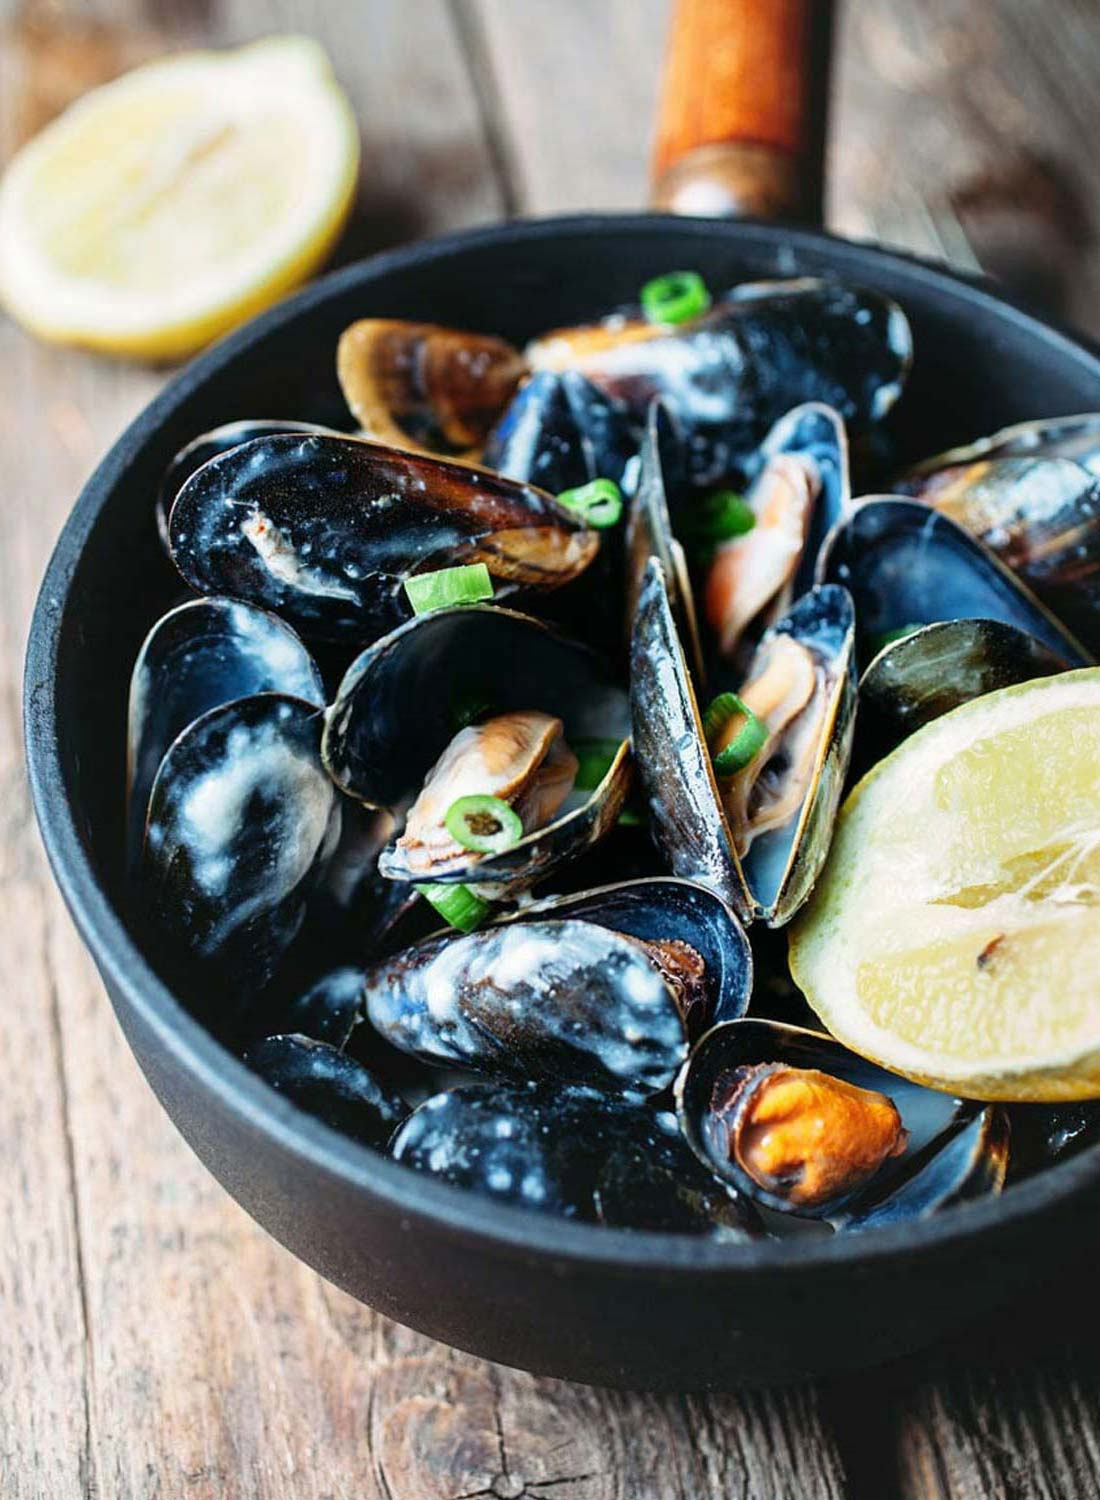 Freshly cooked mussels garnished with lemon in a pot